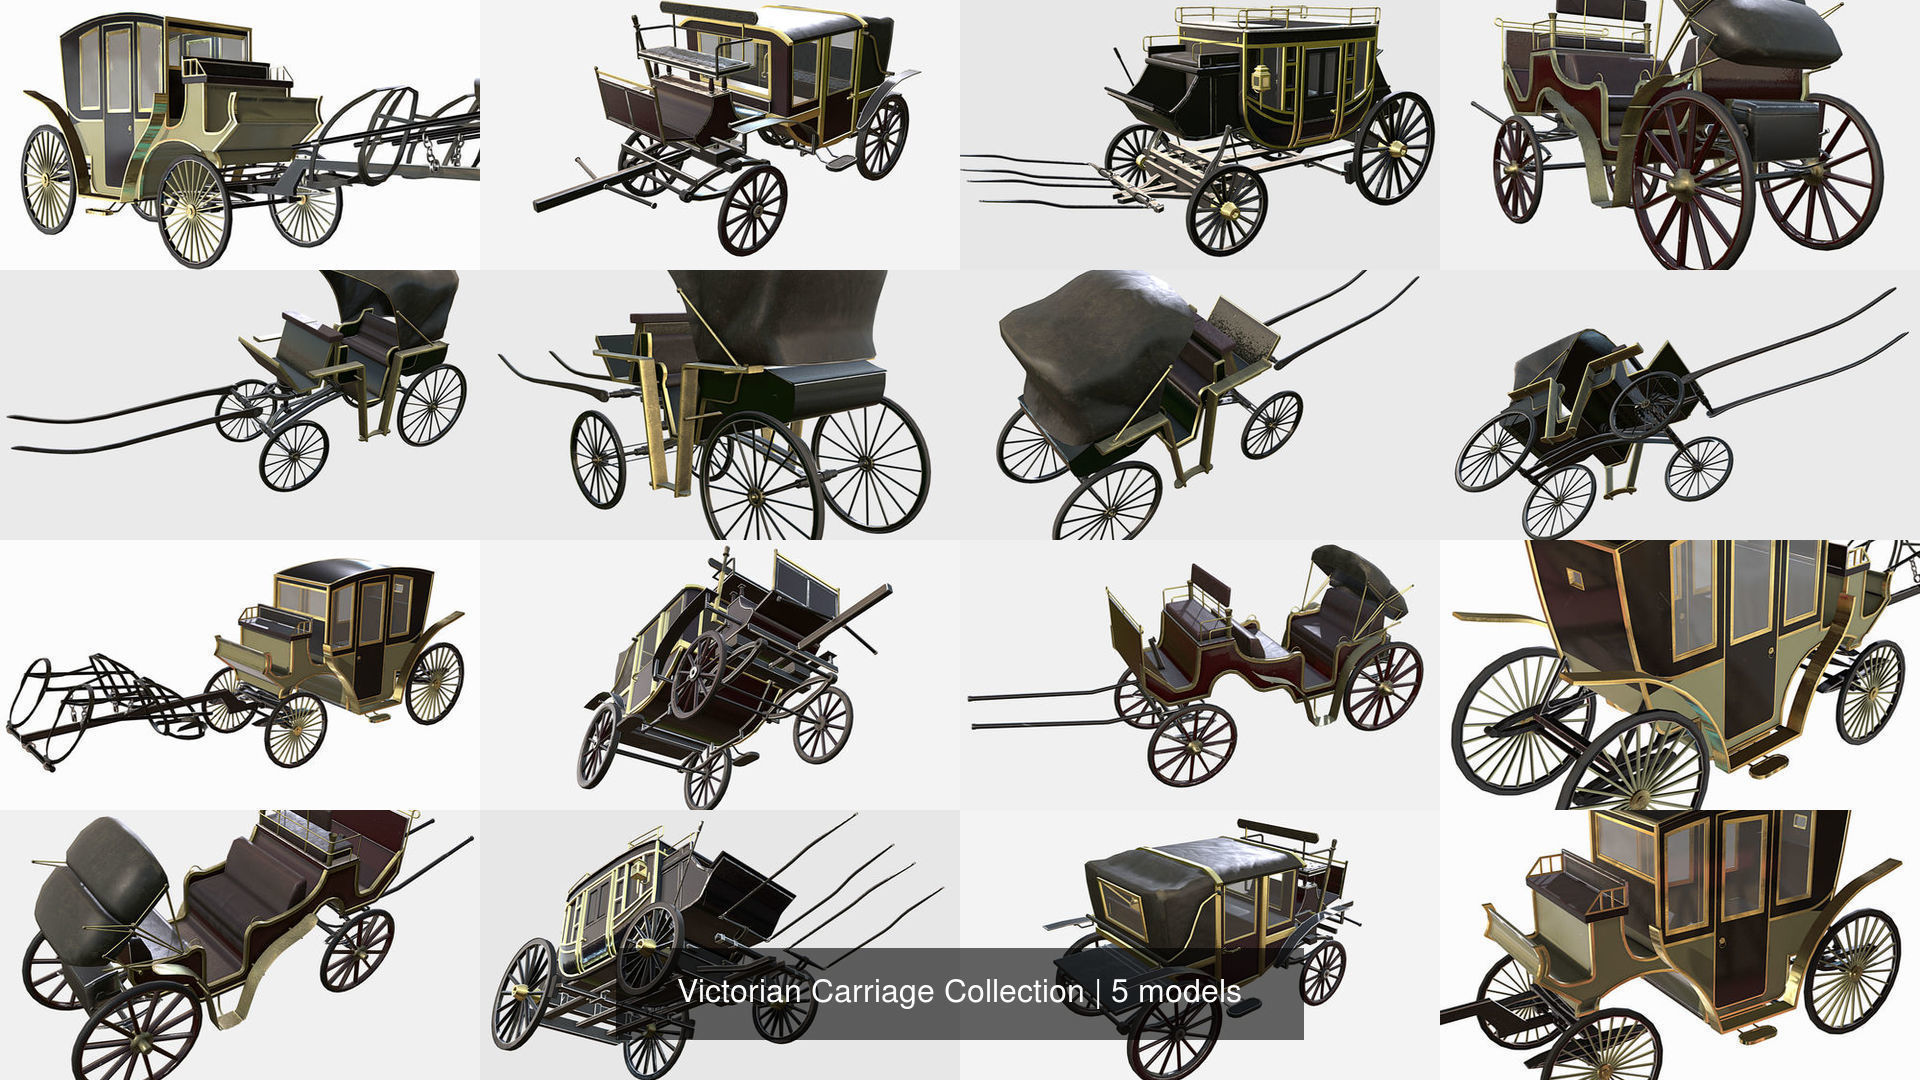 Victorian Carriage Collection